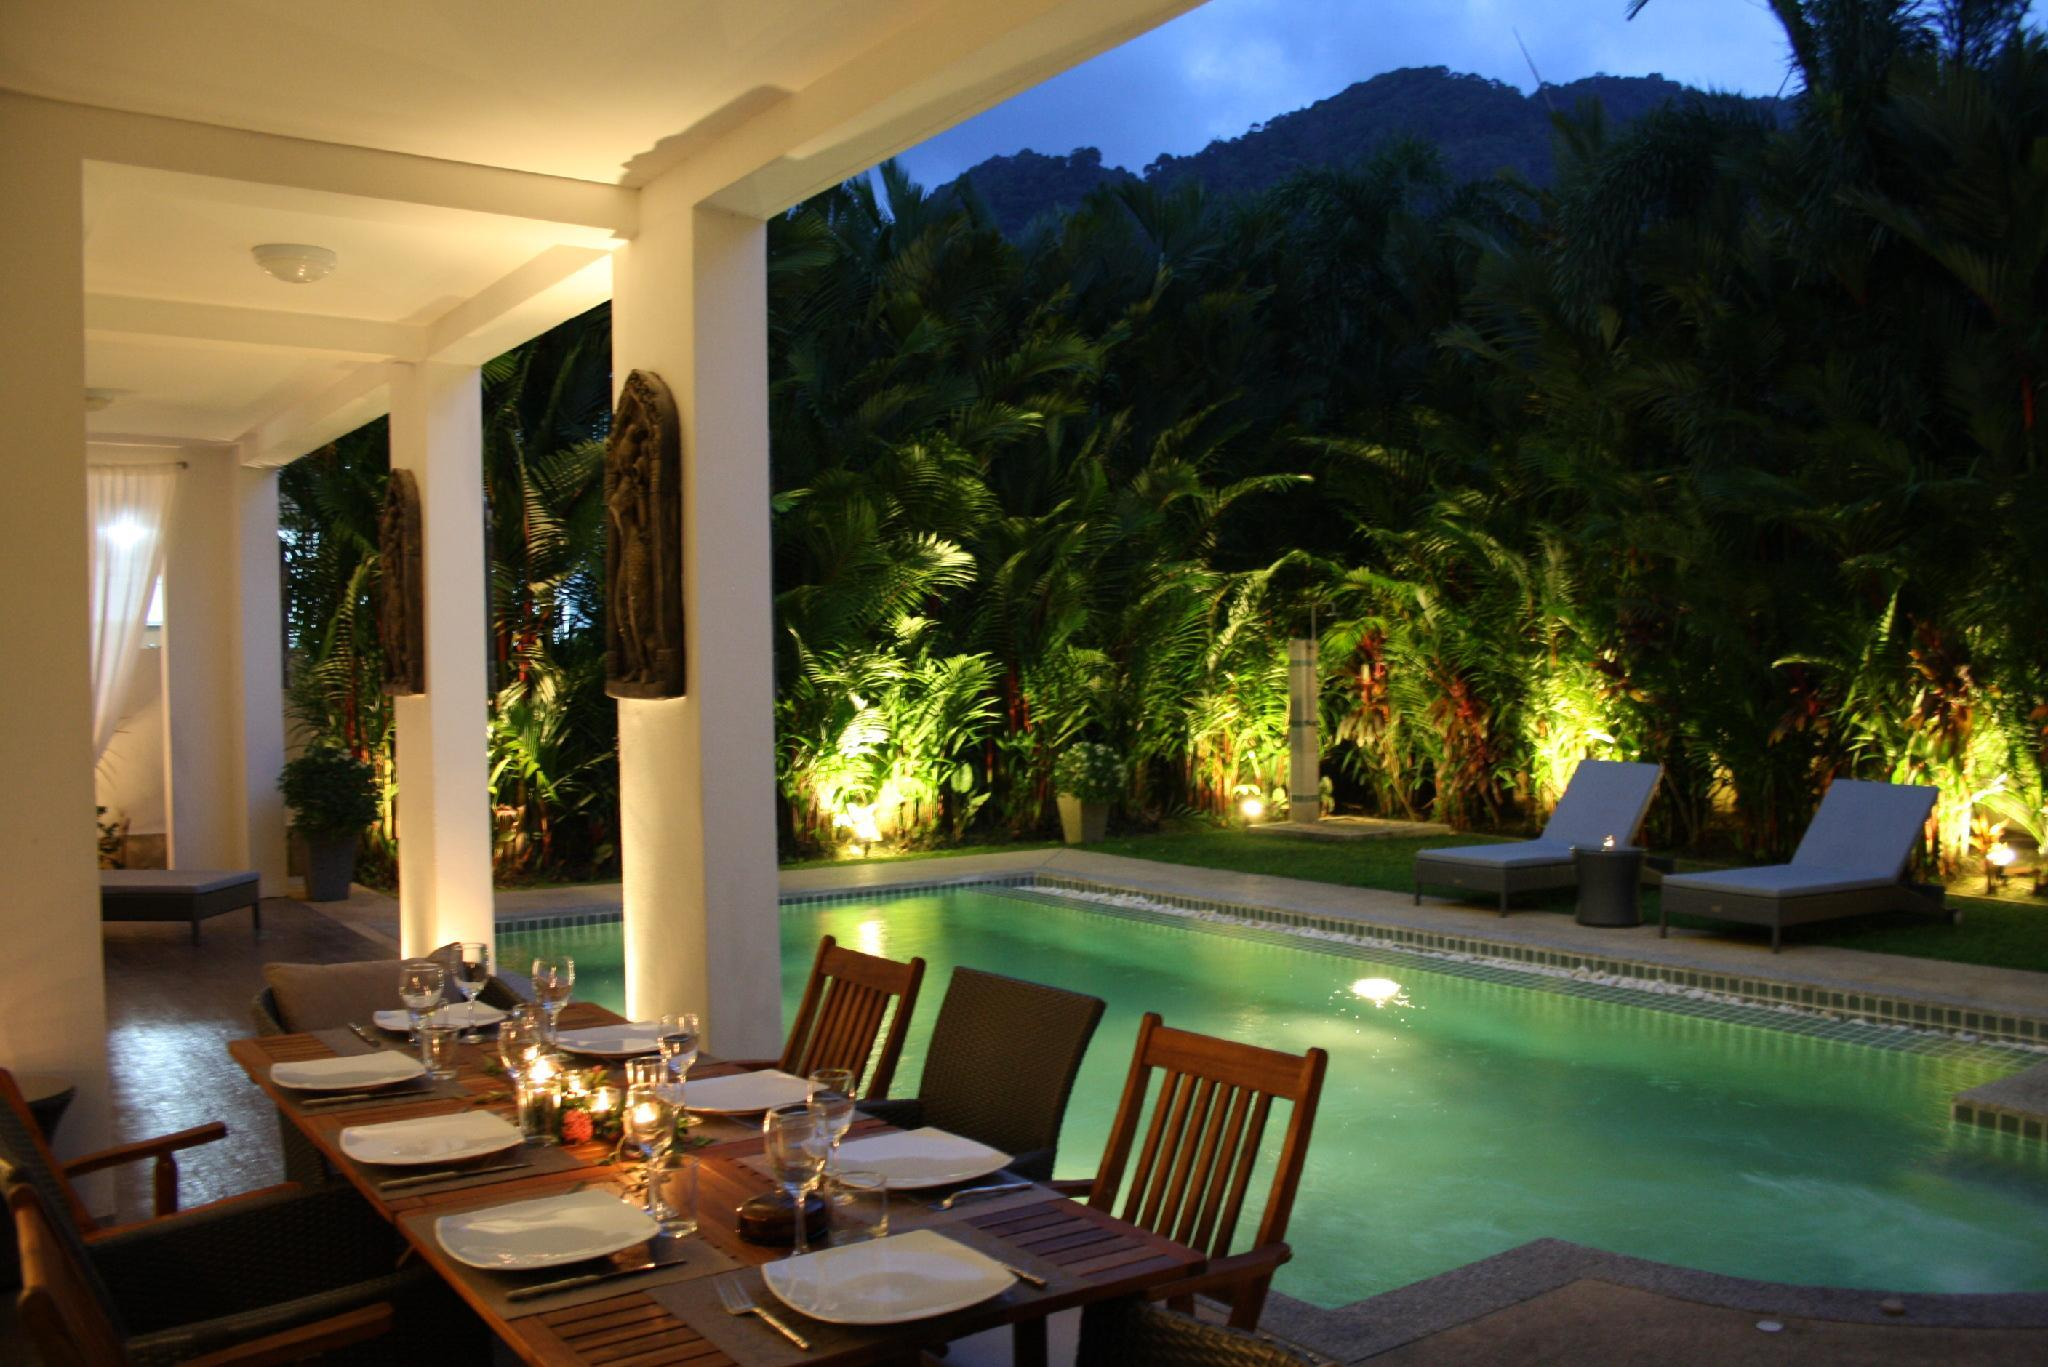 Hotels Reviews: villa w/mountain view &private pool-close t. beach – Picture, Room Rates & Deals